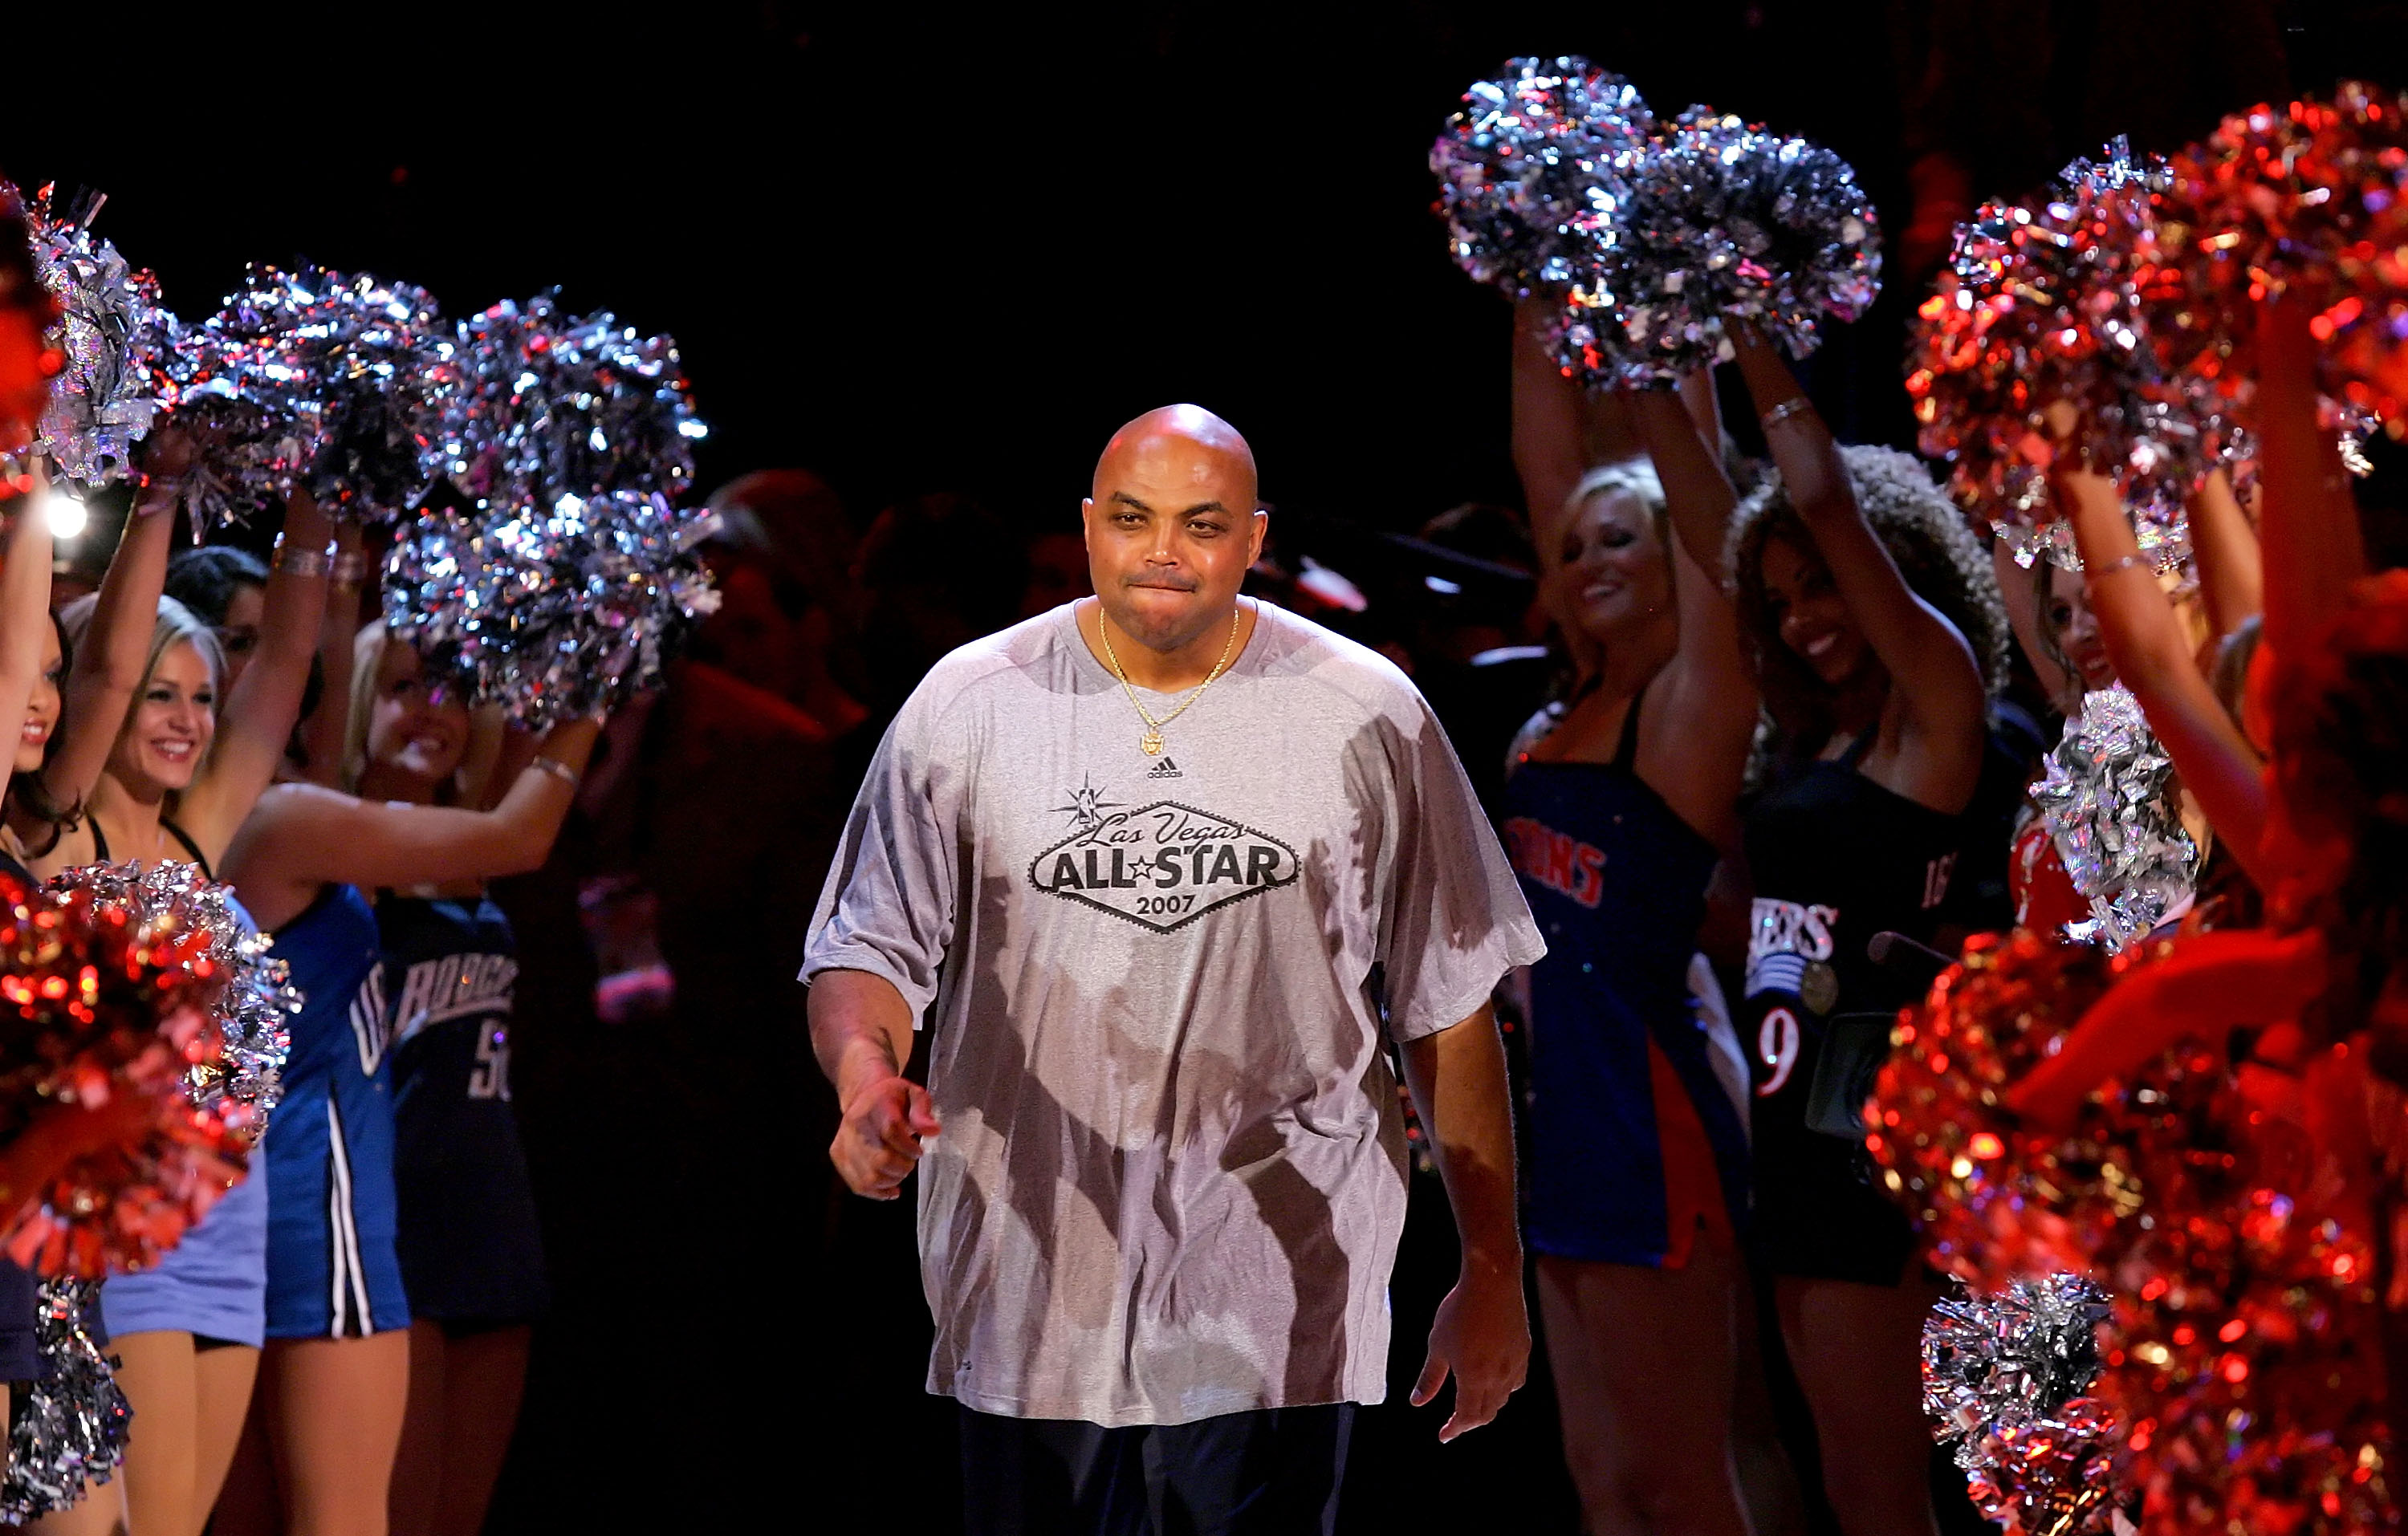 1b4eaed5ae LAS VEGAS - FEBRUARY 17: NBA legend Charles Barkley is introduced before  the start of